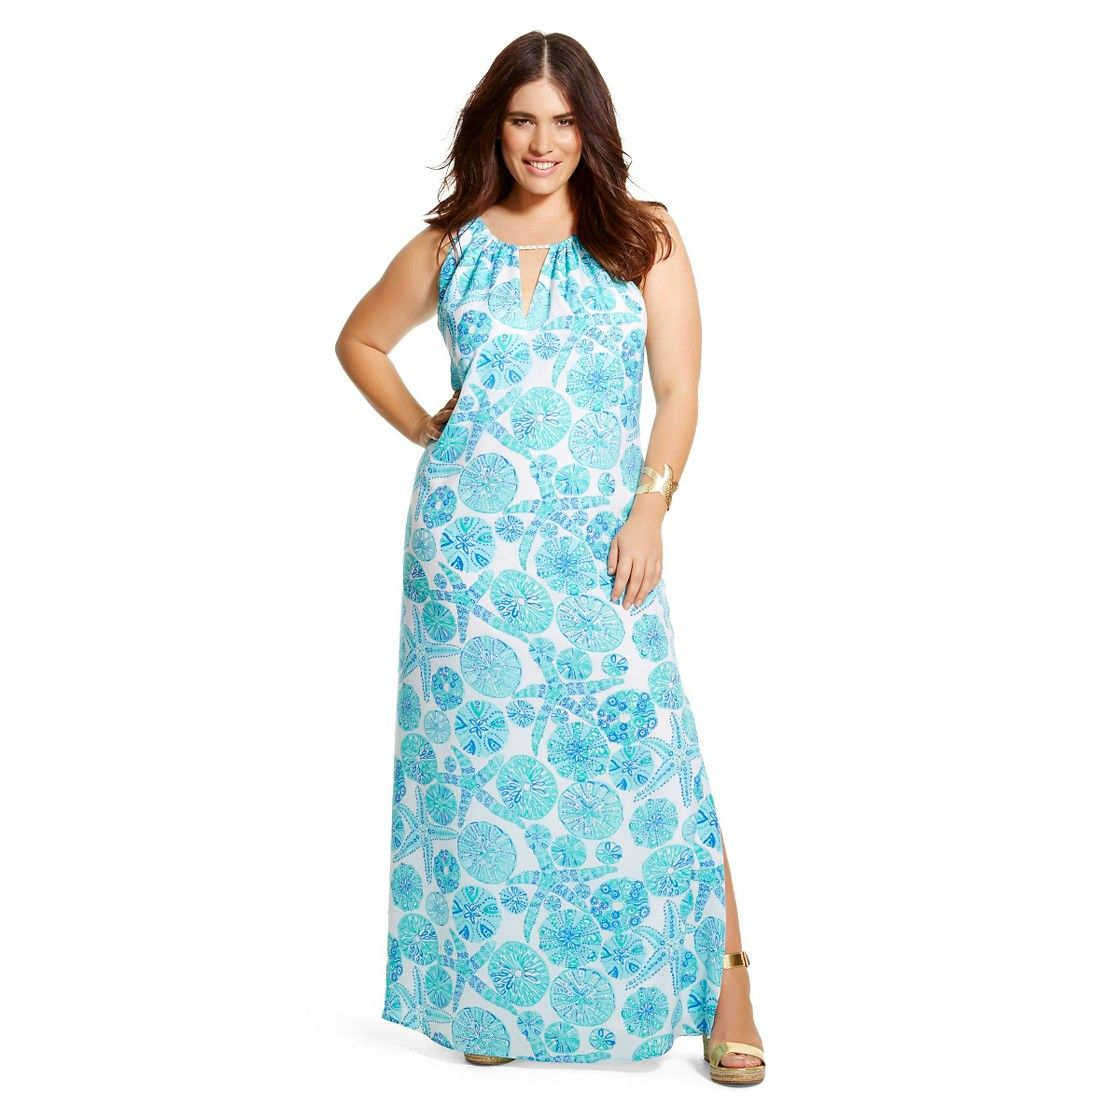 Lilly Pulitzer For Target Women S Plus Size Satin Halter Maxi Dress Sea Urchin For You Target Maxi Dresses Maxi Dress Halter Maxi Dresses [ 1120 x 1120 Pixel ]